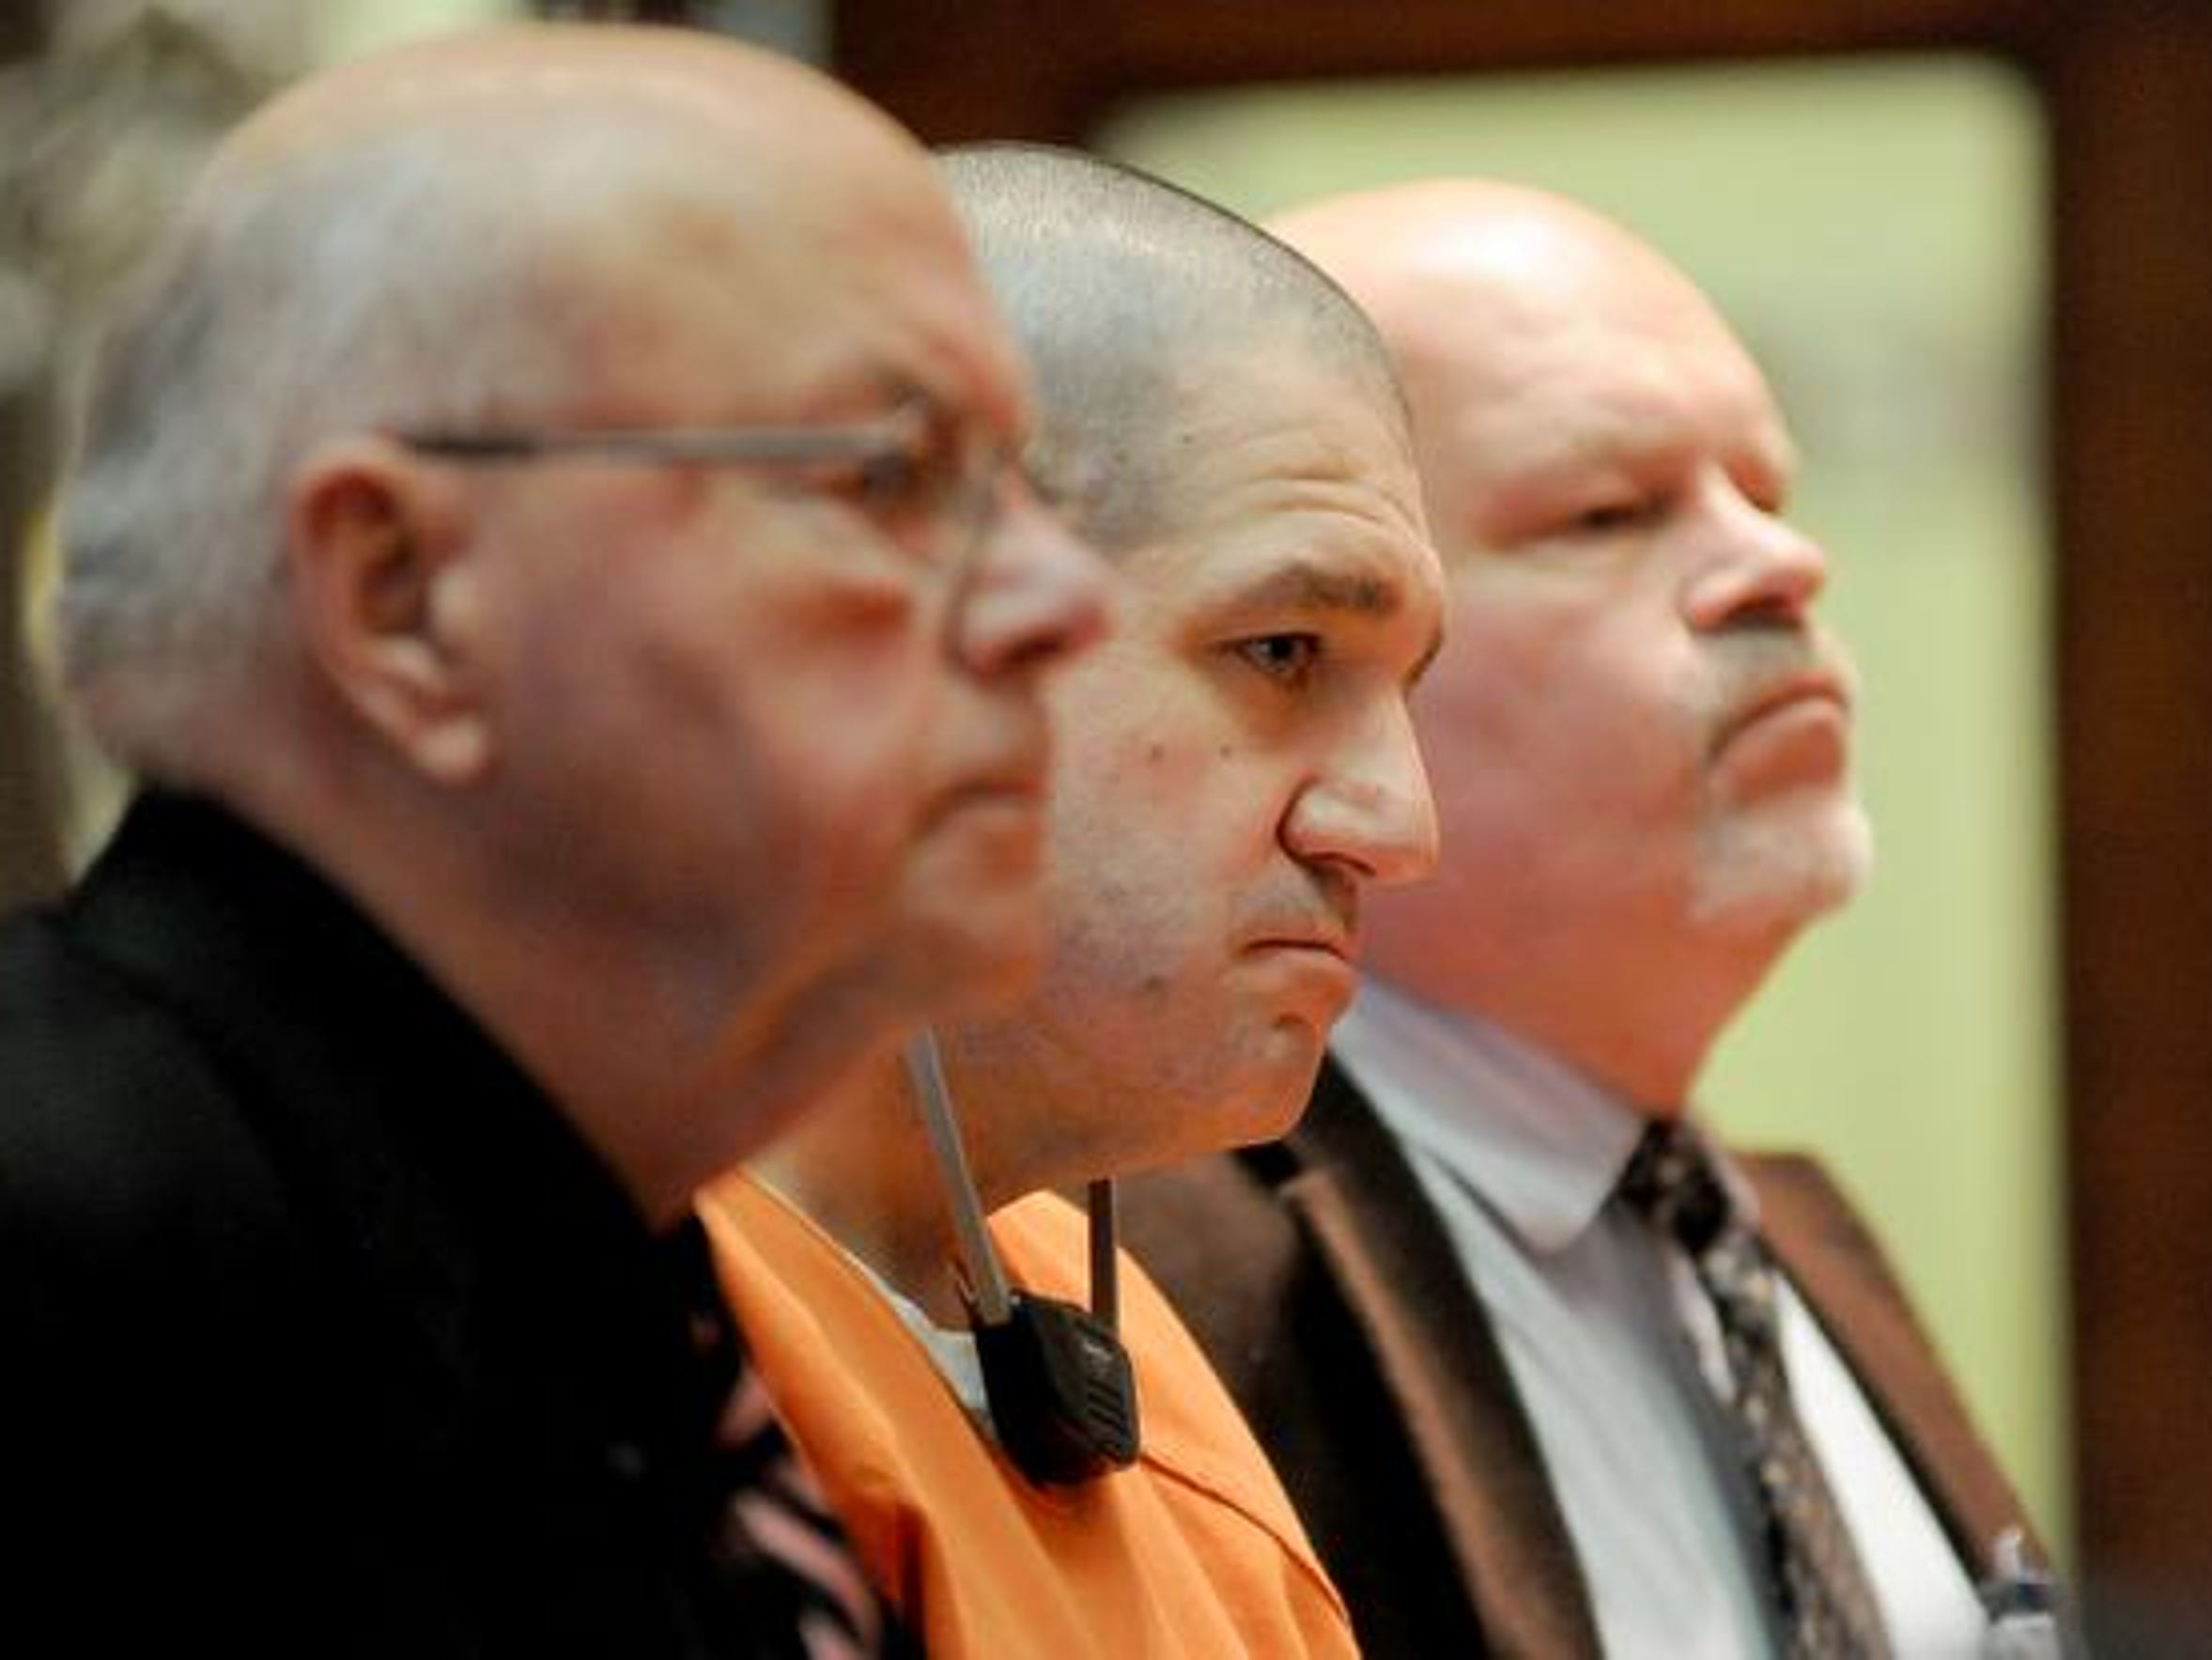 Flanked by attorneys Robert Whitney and R. Rolf Whitney,